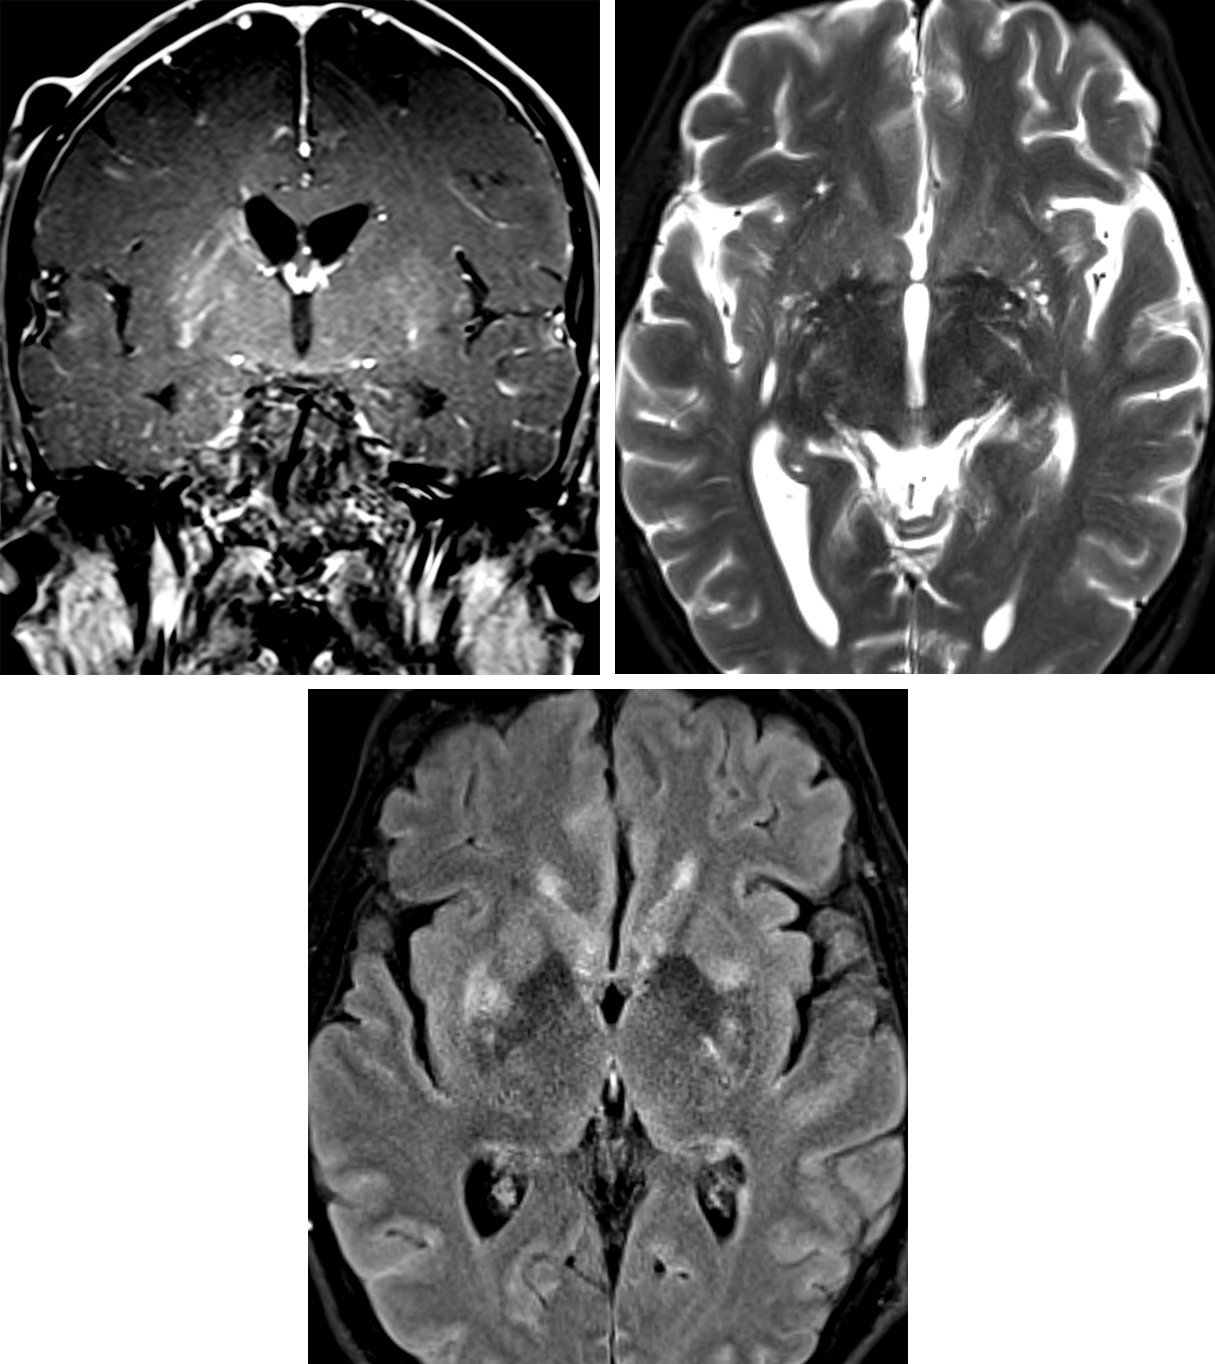 Figure 1: Cryptococcal Meningitis with Virchow-Robin space involvement. Coronal T1+C (top row left): Abnormal enhancement along the expected course of the perivascular spaces in the lentiform nuclei, greater on the right. Axial T2 (top row right): The appearance of the perivascular space involvement by cryptococcus can look similar to physiologic dilatation of these spaces. Axial FLAIR (bottom row): However, FLAIR hyperintensity in and around these perivascular should raise suspicion for cryptococcus in the appropriate clinical context.